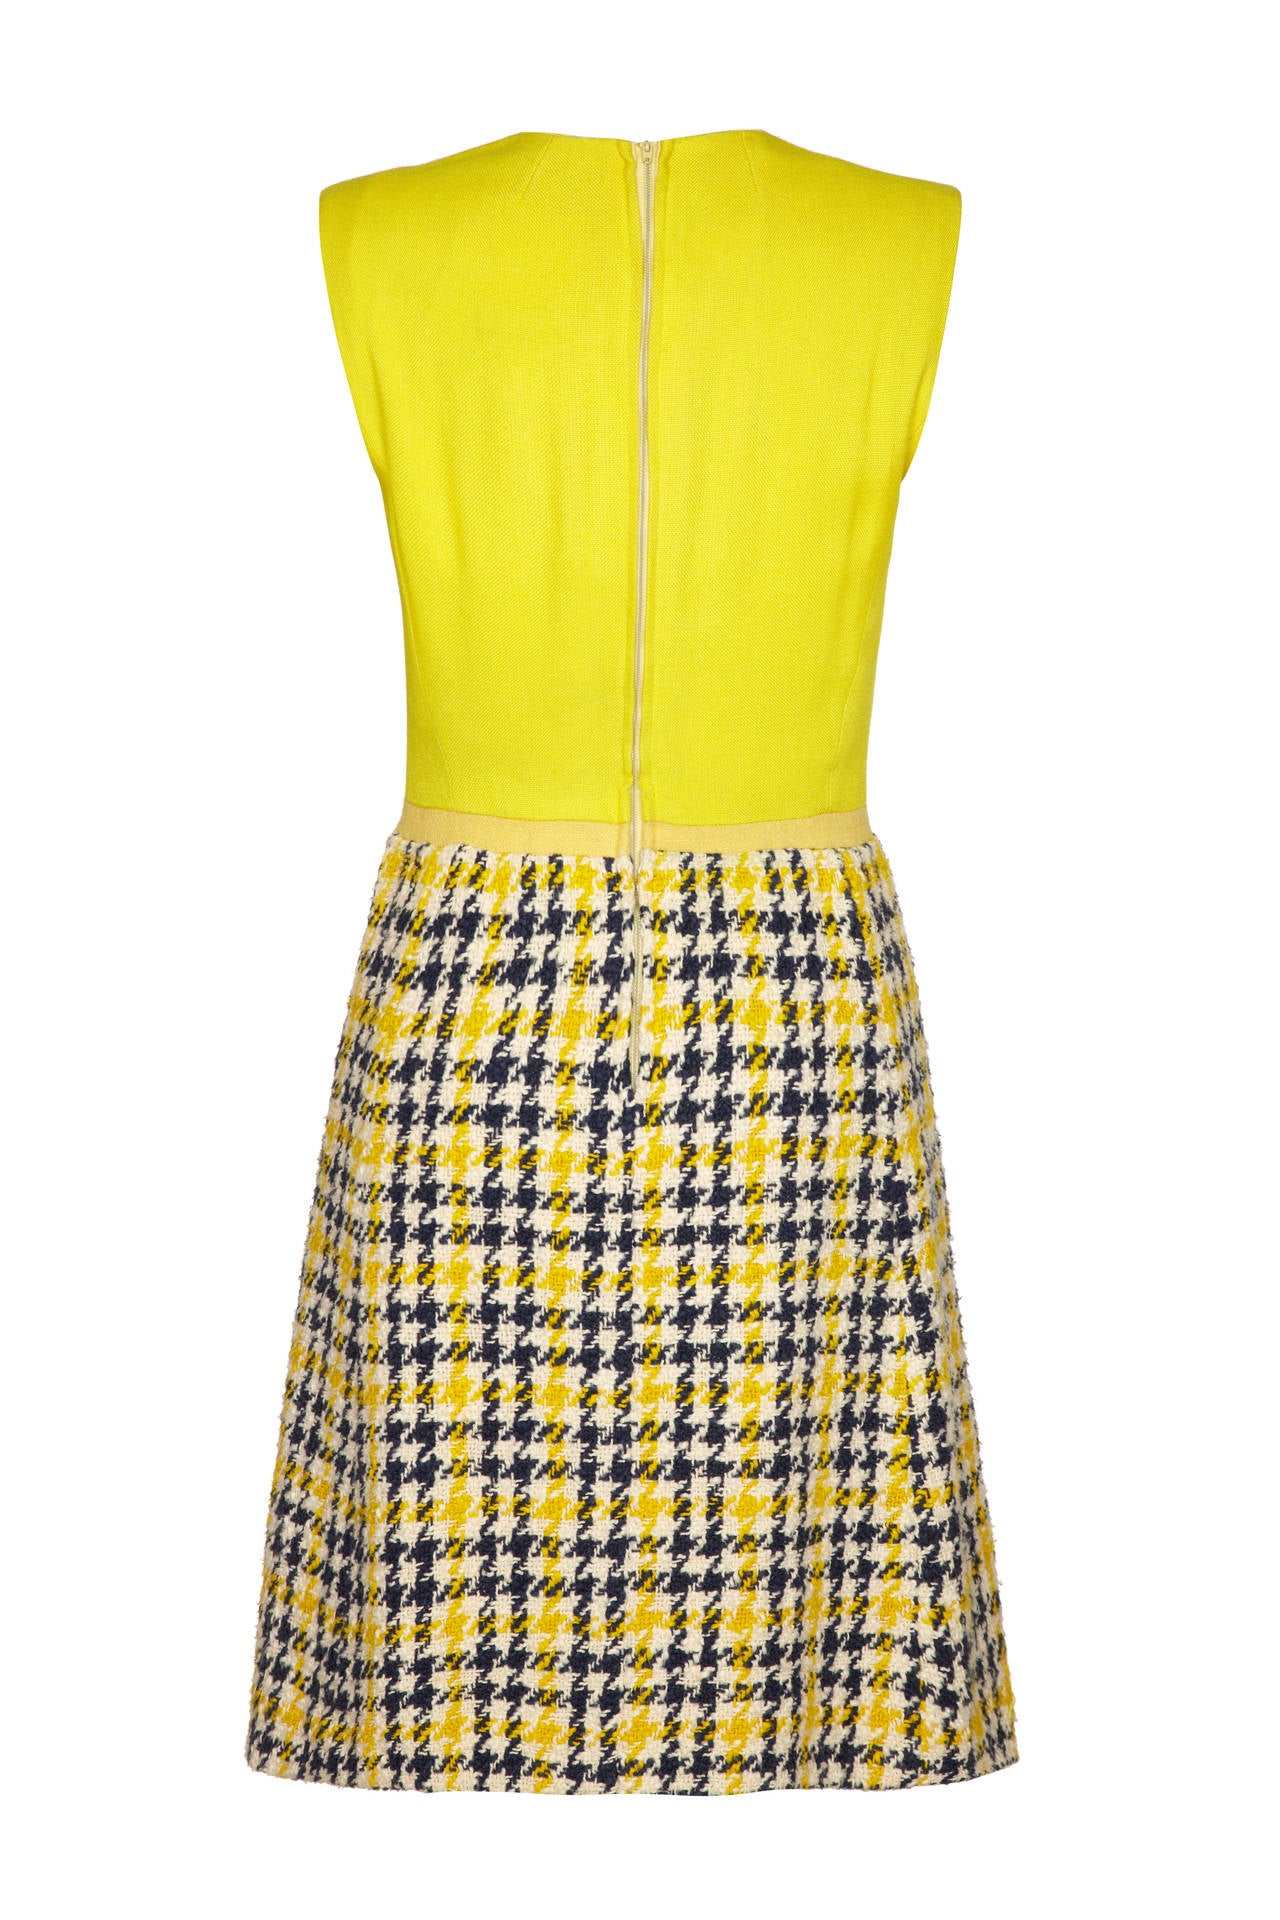 1960s Yellow & Blue Tweed Dress Suit In Excellent Condition For Sale In London, GB